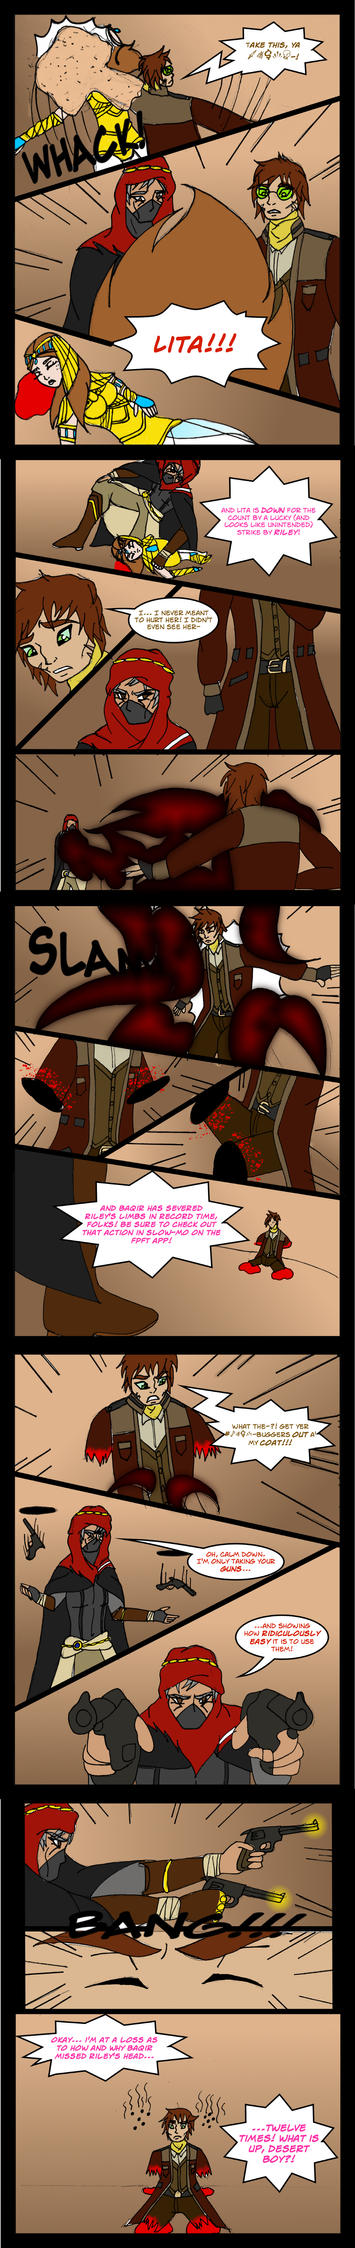 DA Fighting Tournament Round 4 Page 4 by Anazen